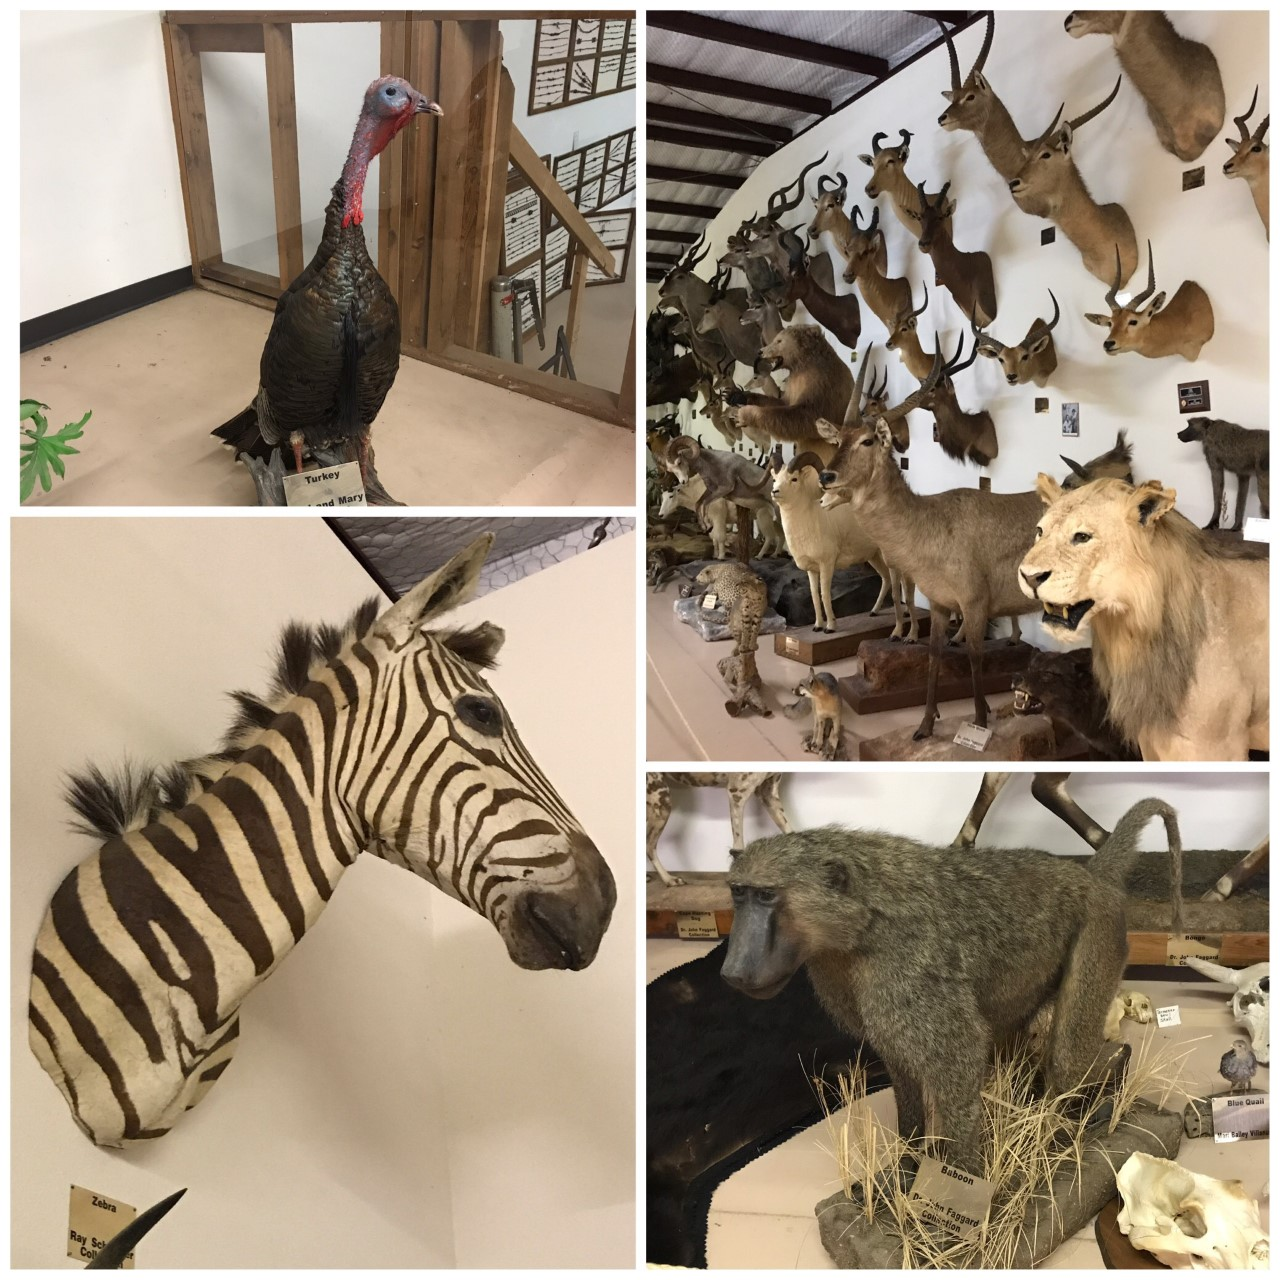 Animal Exhibit